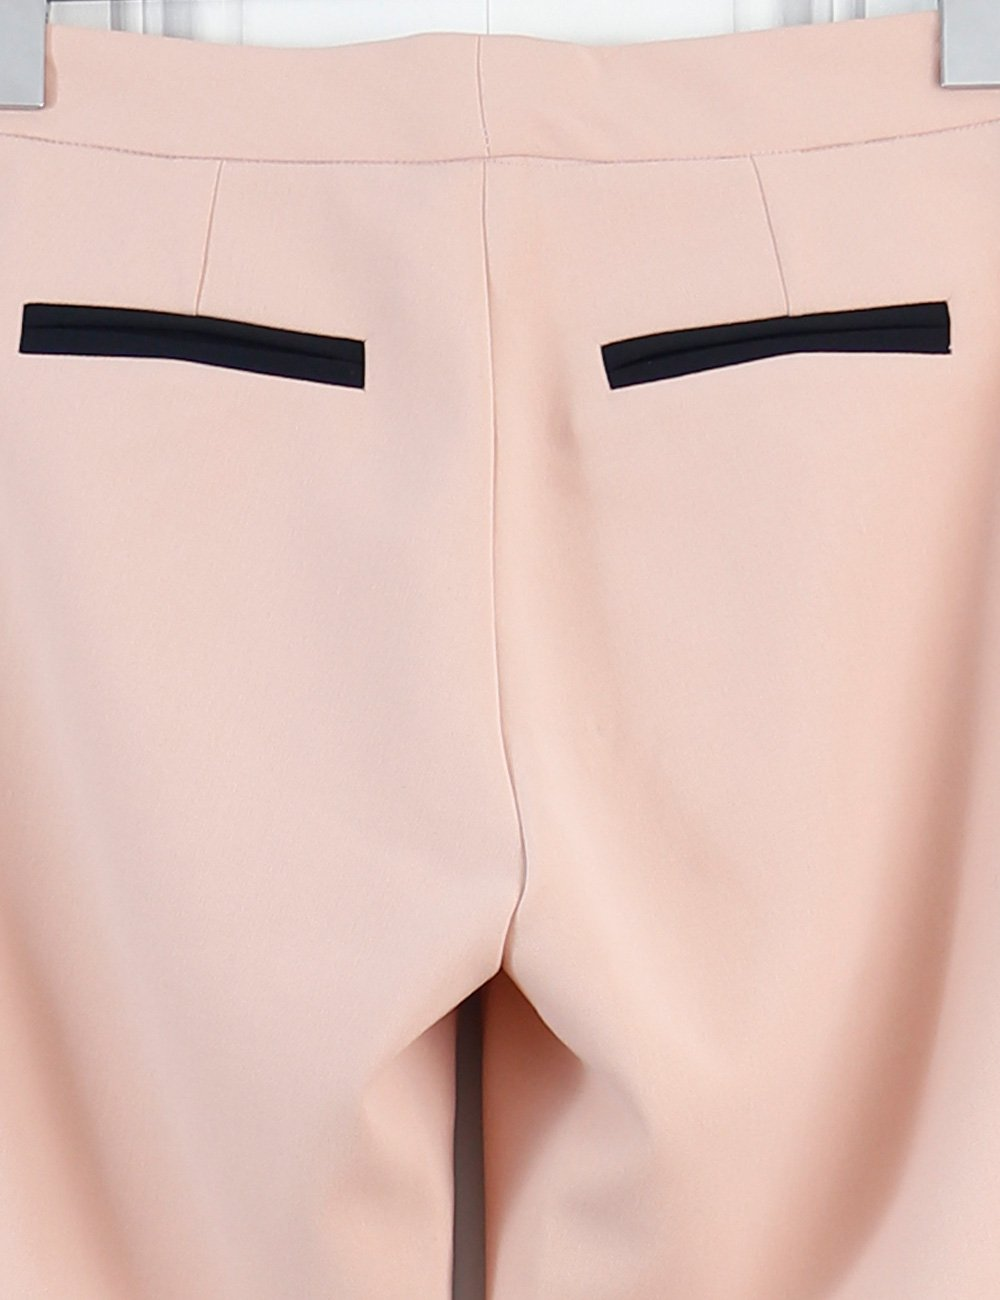 Hoss Intropia pink tailored trousers with contrasting black piping and ankle zips 6Uk  Edit alt text